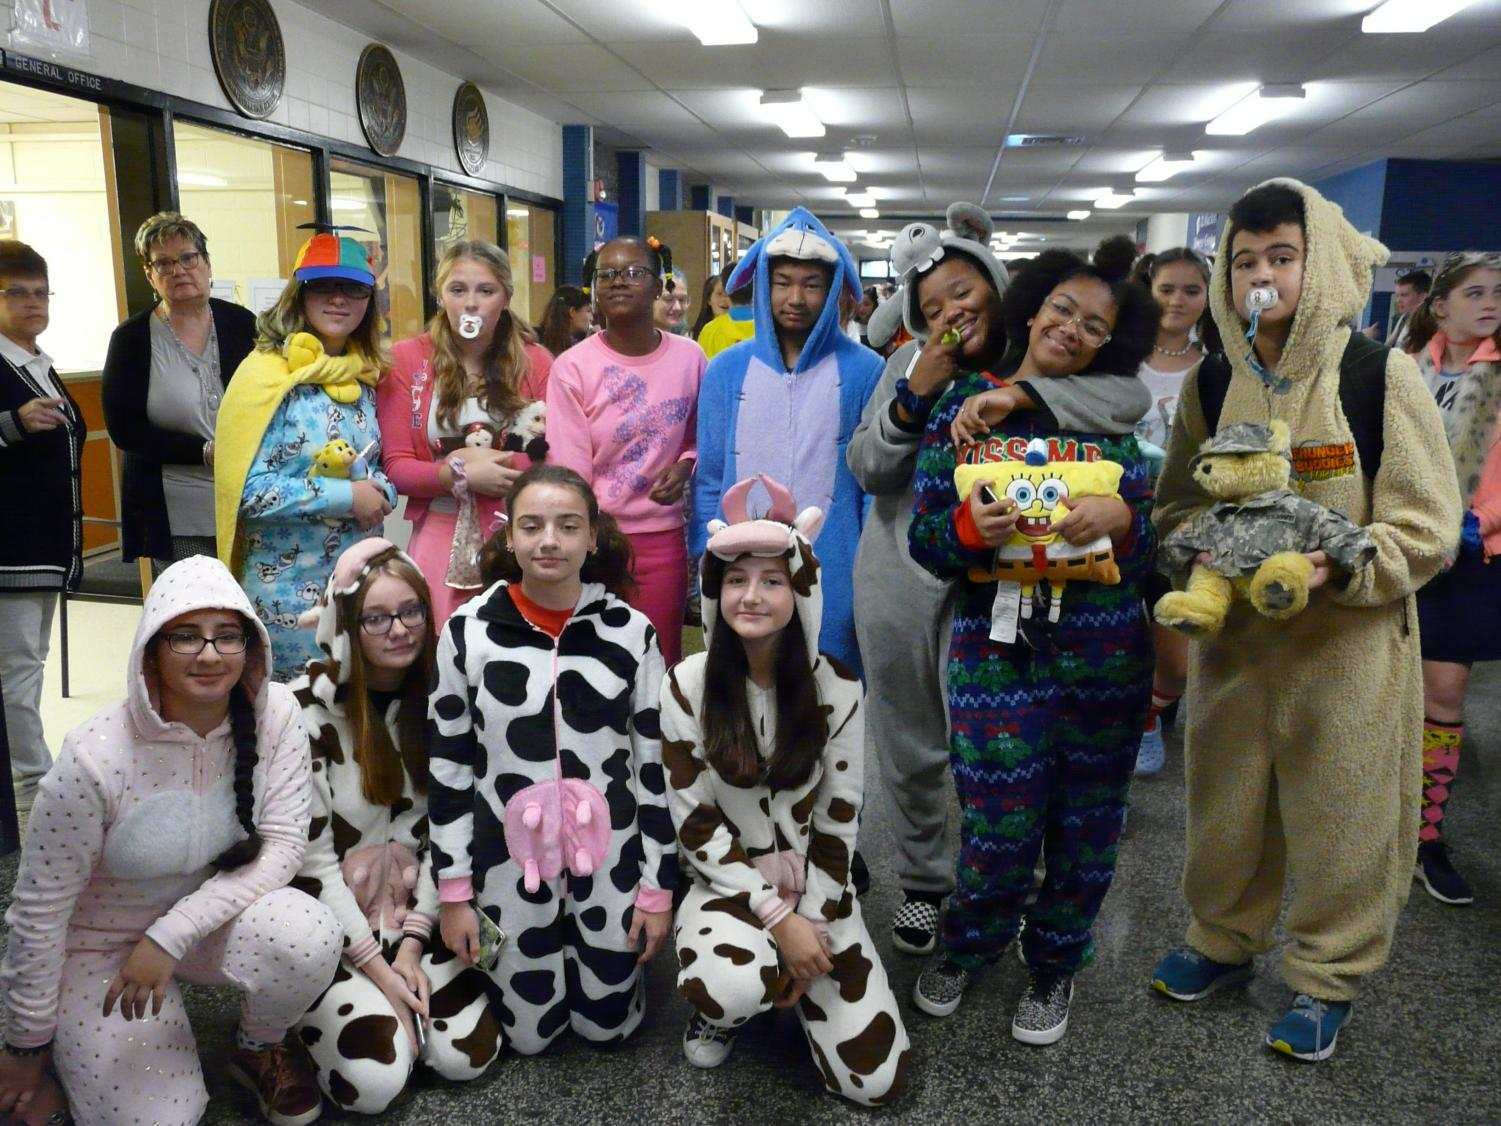 Freshman+had+to+dress+as+children%2C+sophomores+as+teens%2C+juniors+as+adults%2C+and+seniors+as%2C+well%2C+senior+citizens.+Pictured+here+are+some+of+our+naptime-ready+freshmen+in+onesies.